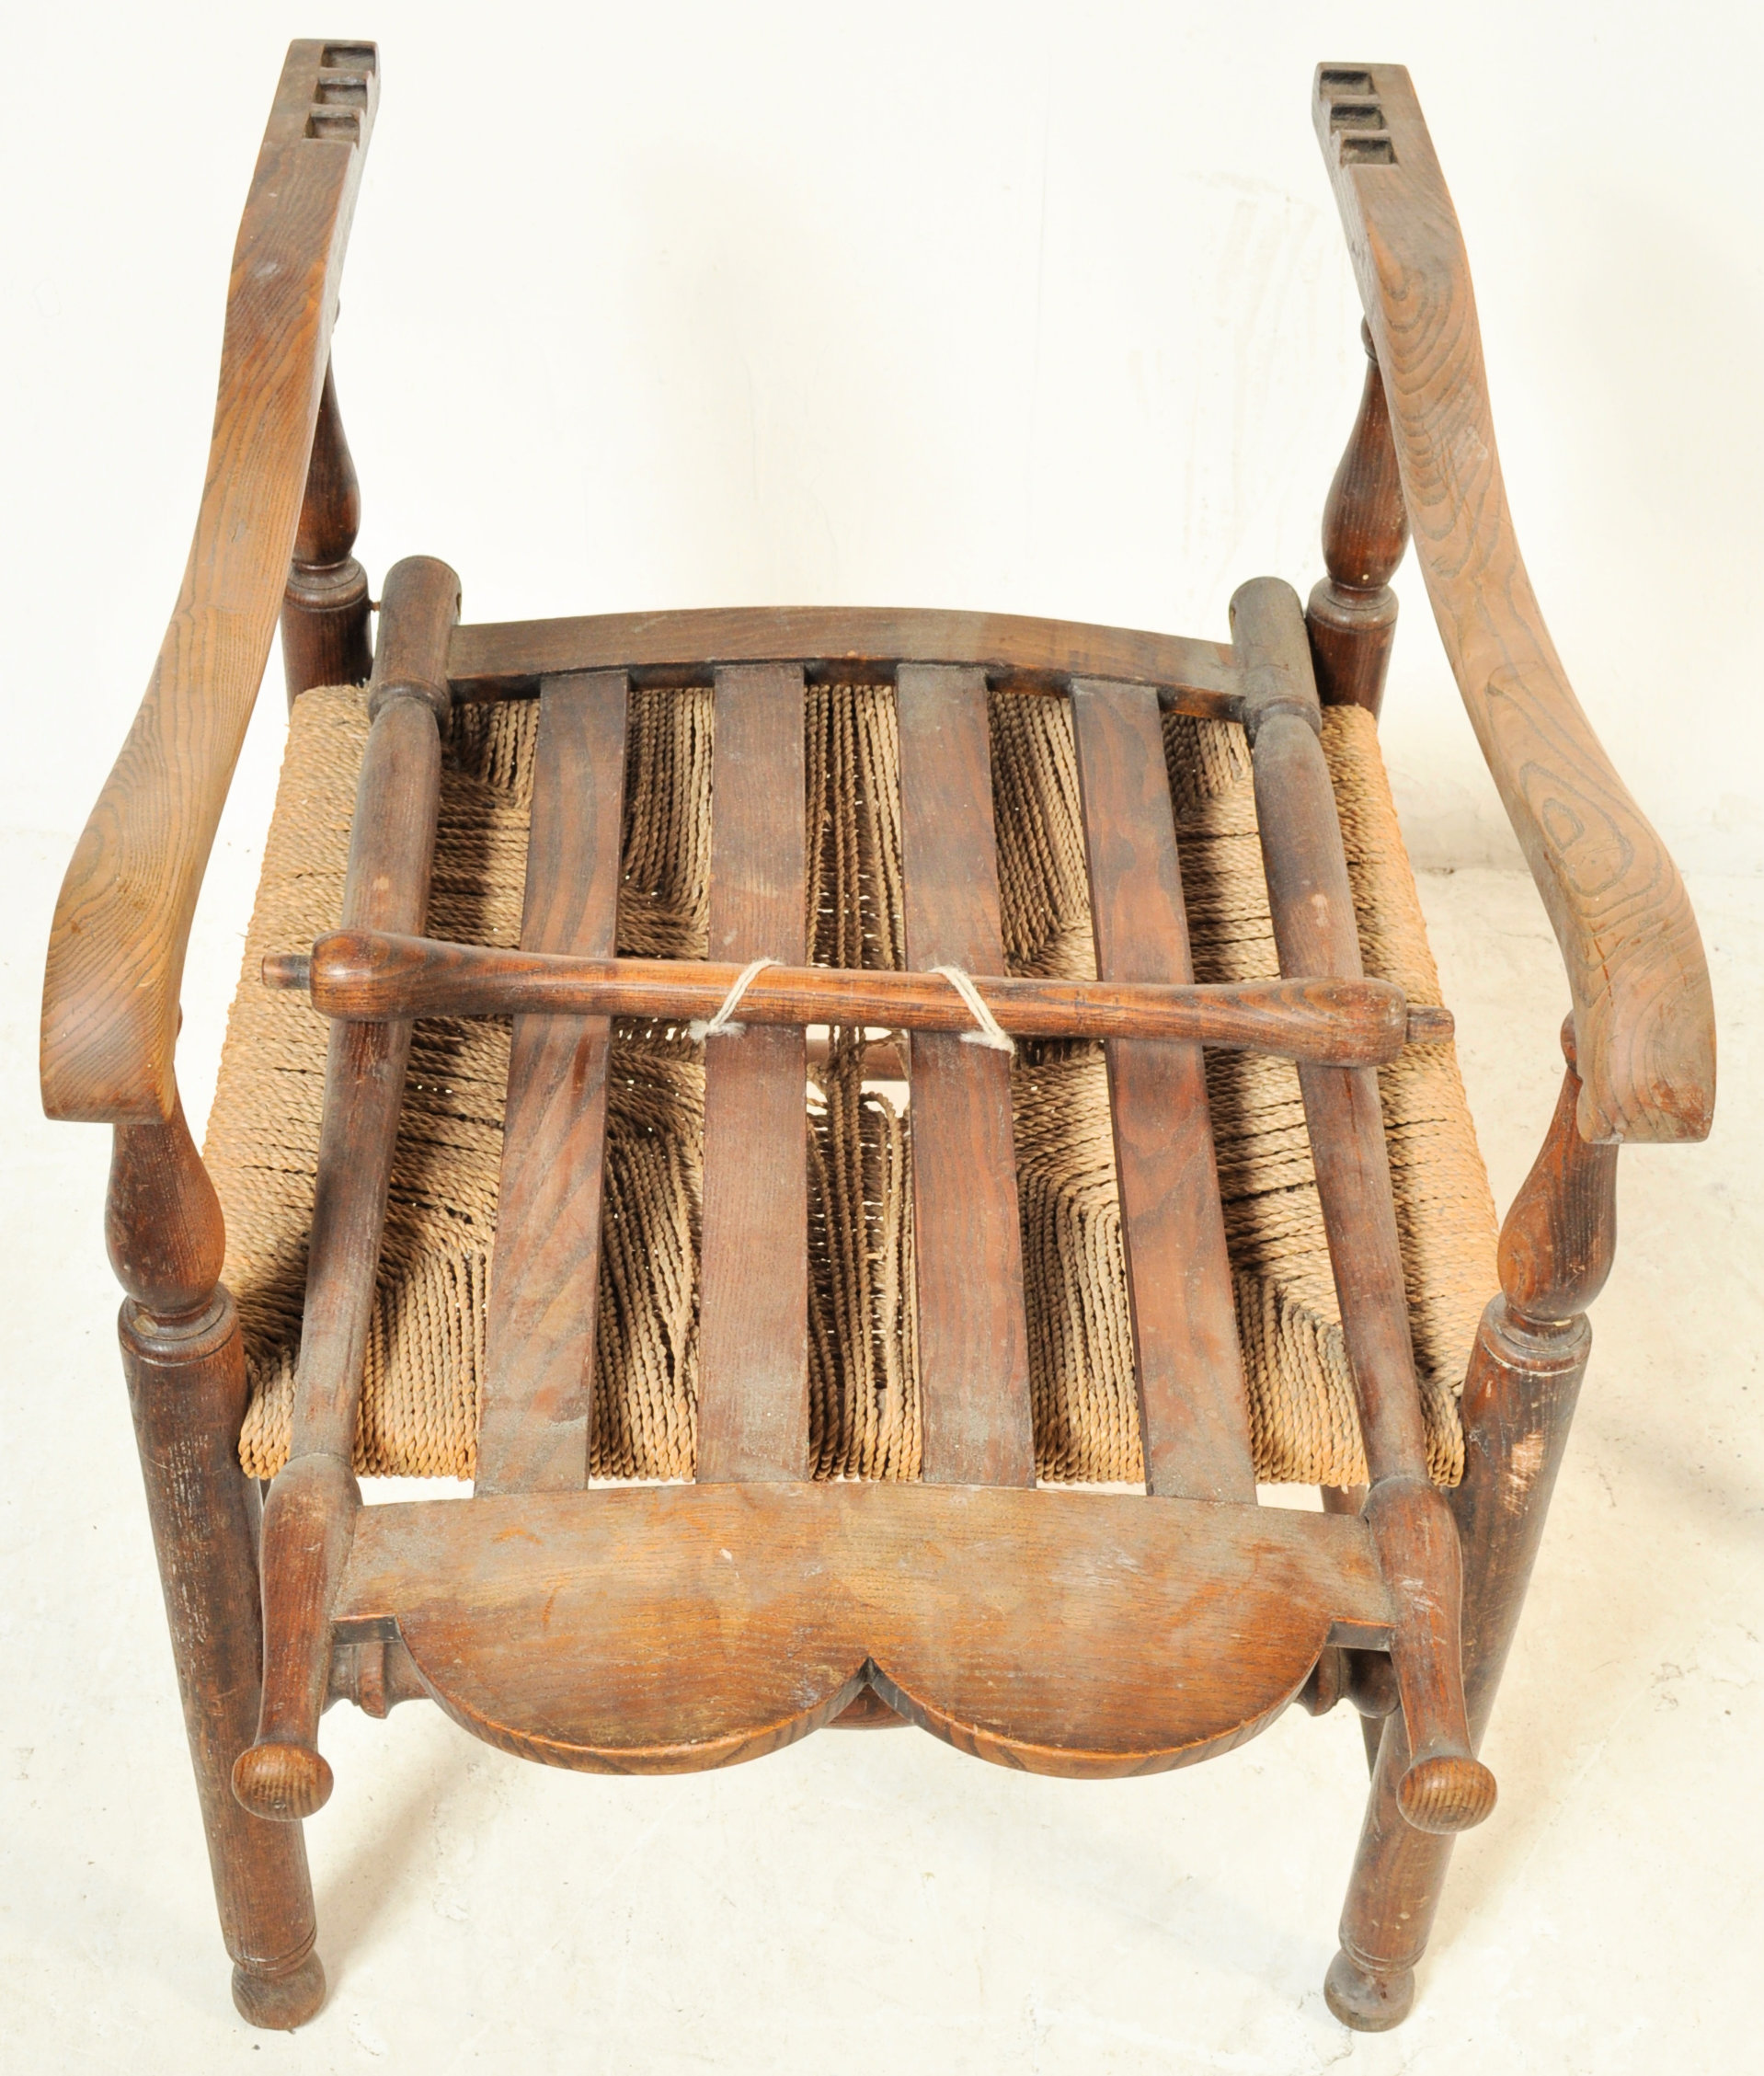 GEORGE II 18TH CENTURY RECLINING NORTH COUNTRY CHAIR WITH ANOTHER - Image 6 of 7